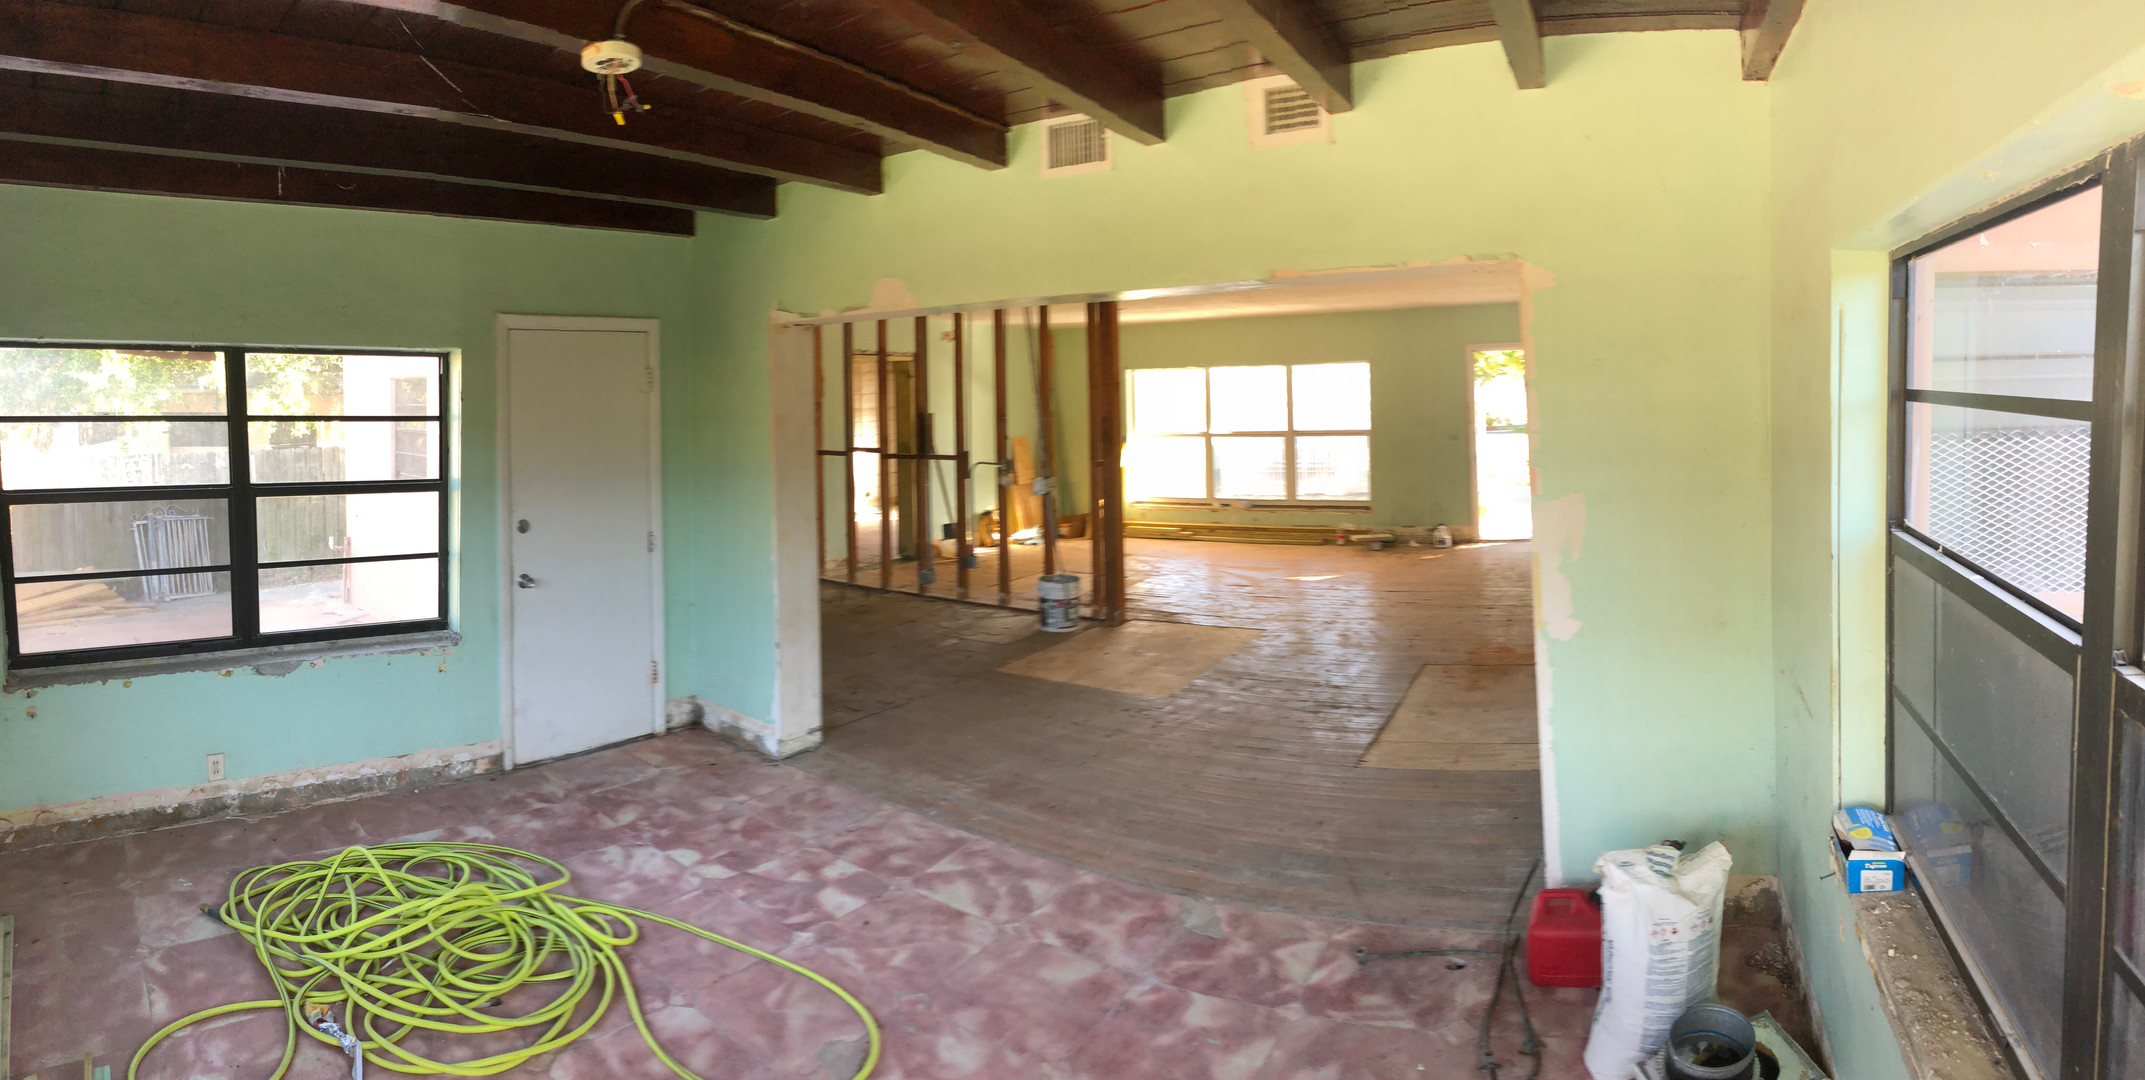 Residential Remodeling - Before